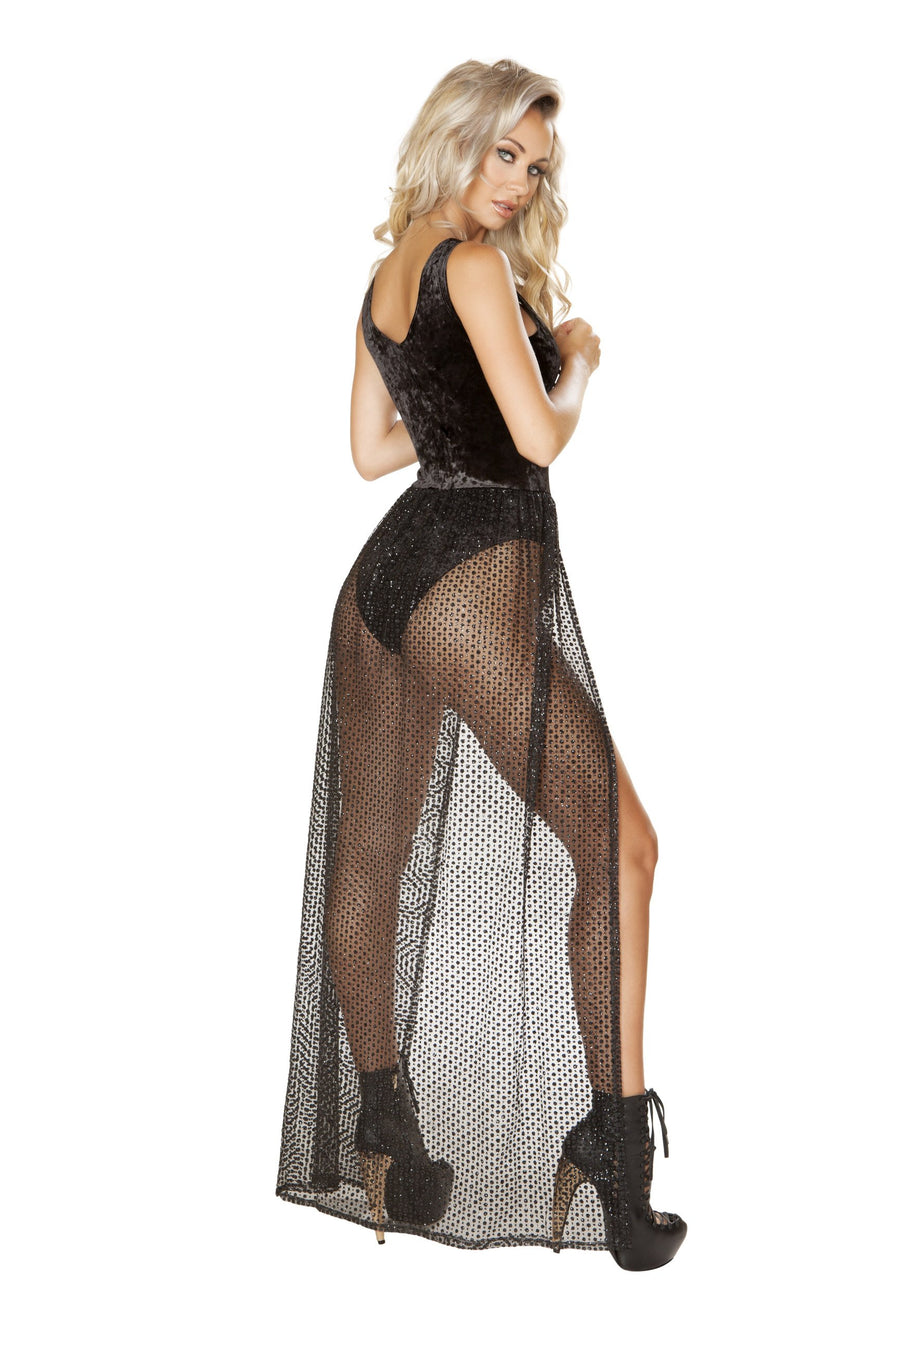 3585 - 1pc Lace-up Velvet Romper with Attached Sheer Open Front Glitter Skirt